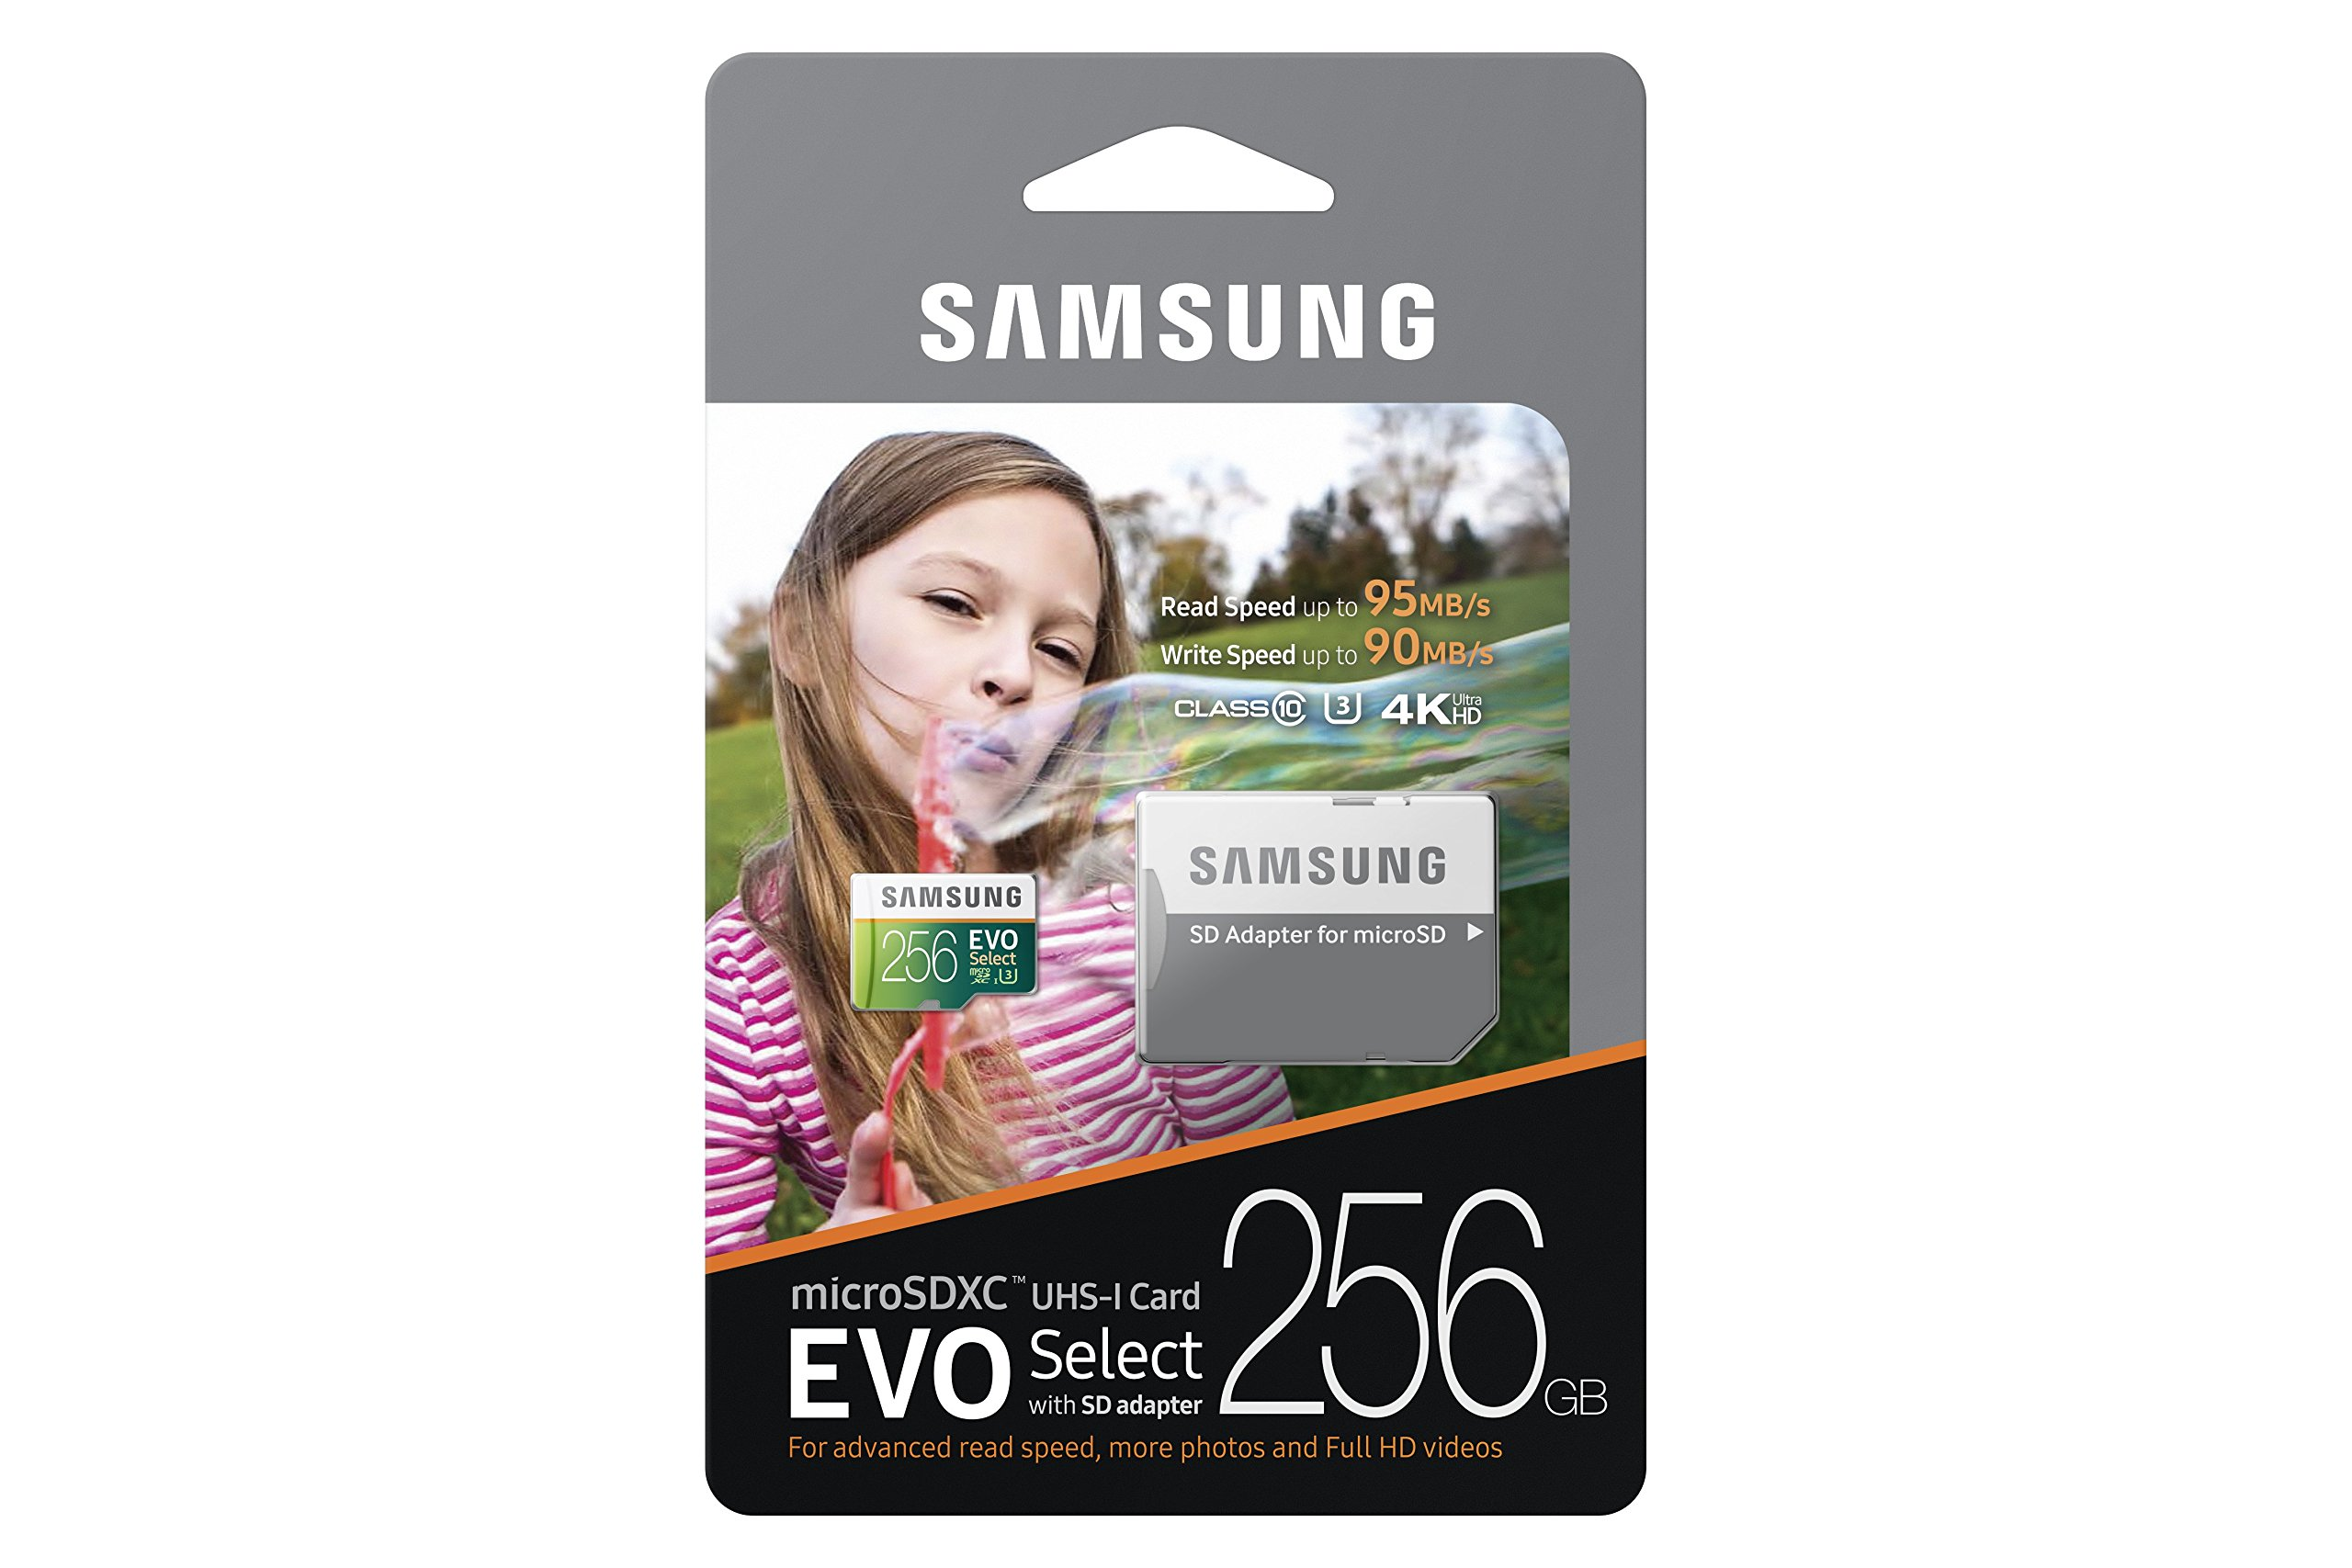 Samsung 256GB 95MB/s MicroSDXC EVO Select Memory Card with Adapter (MB-ME256DA/AM) by Samsung (Image #4)